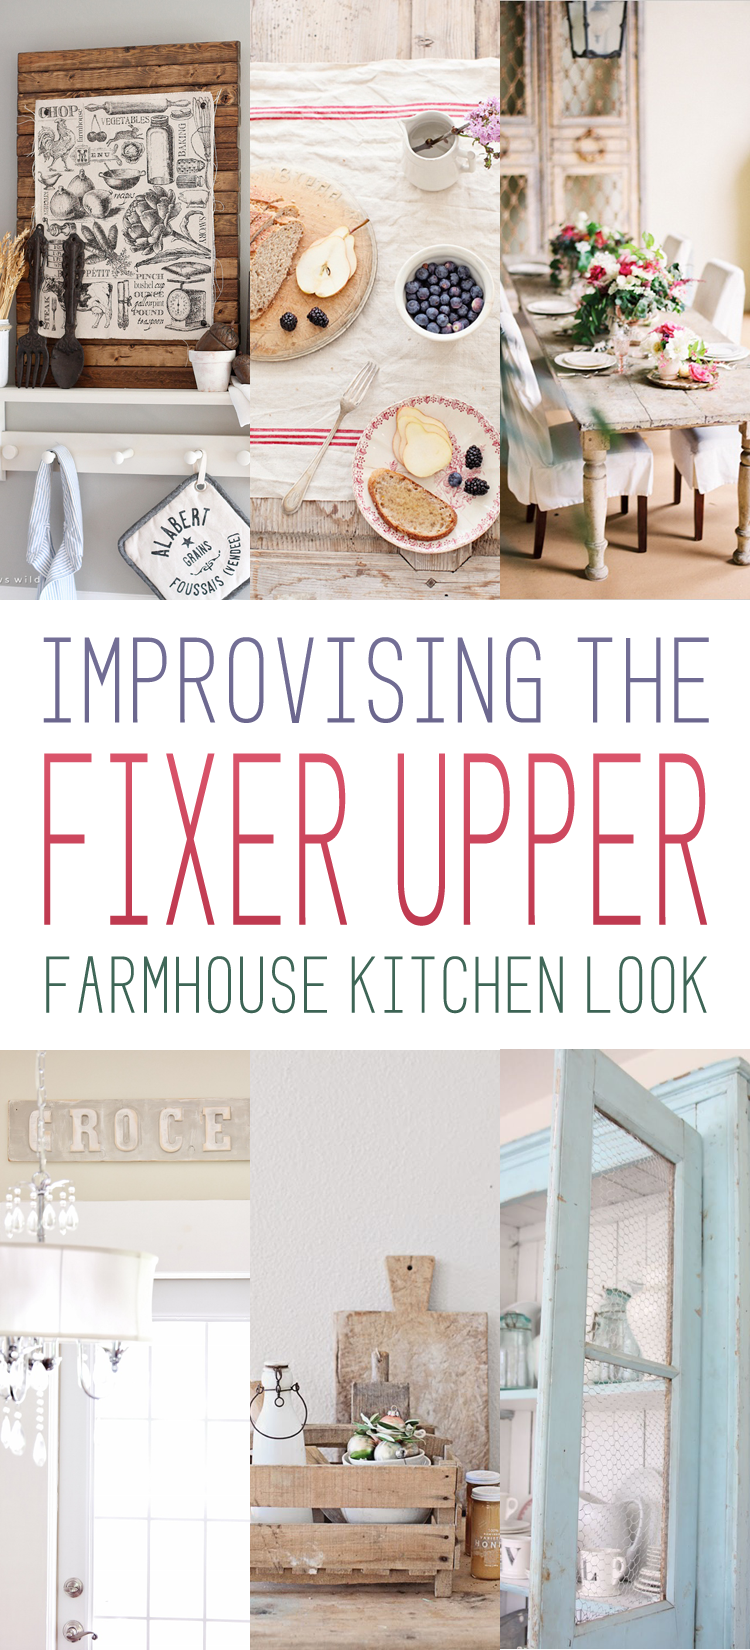 Fixer upper kitchen decor ideas - Improvising The Fixer Upper Farmhouse Kitchen Look The Cottage Market